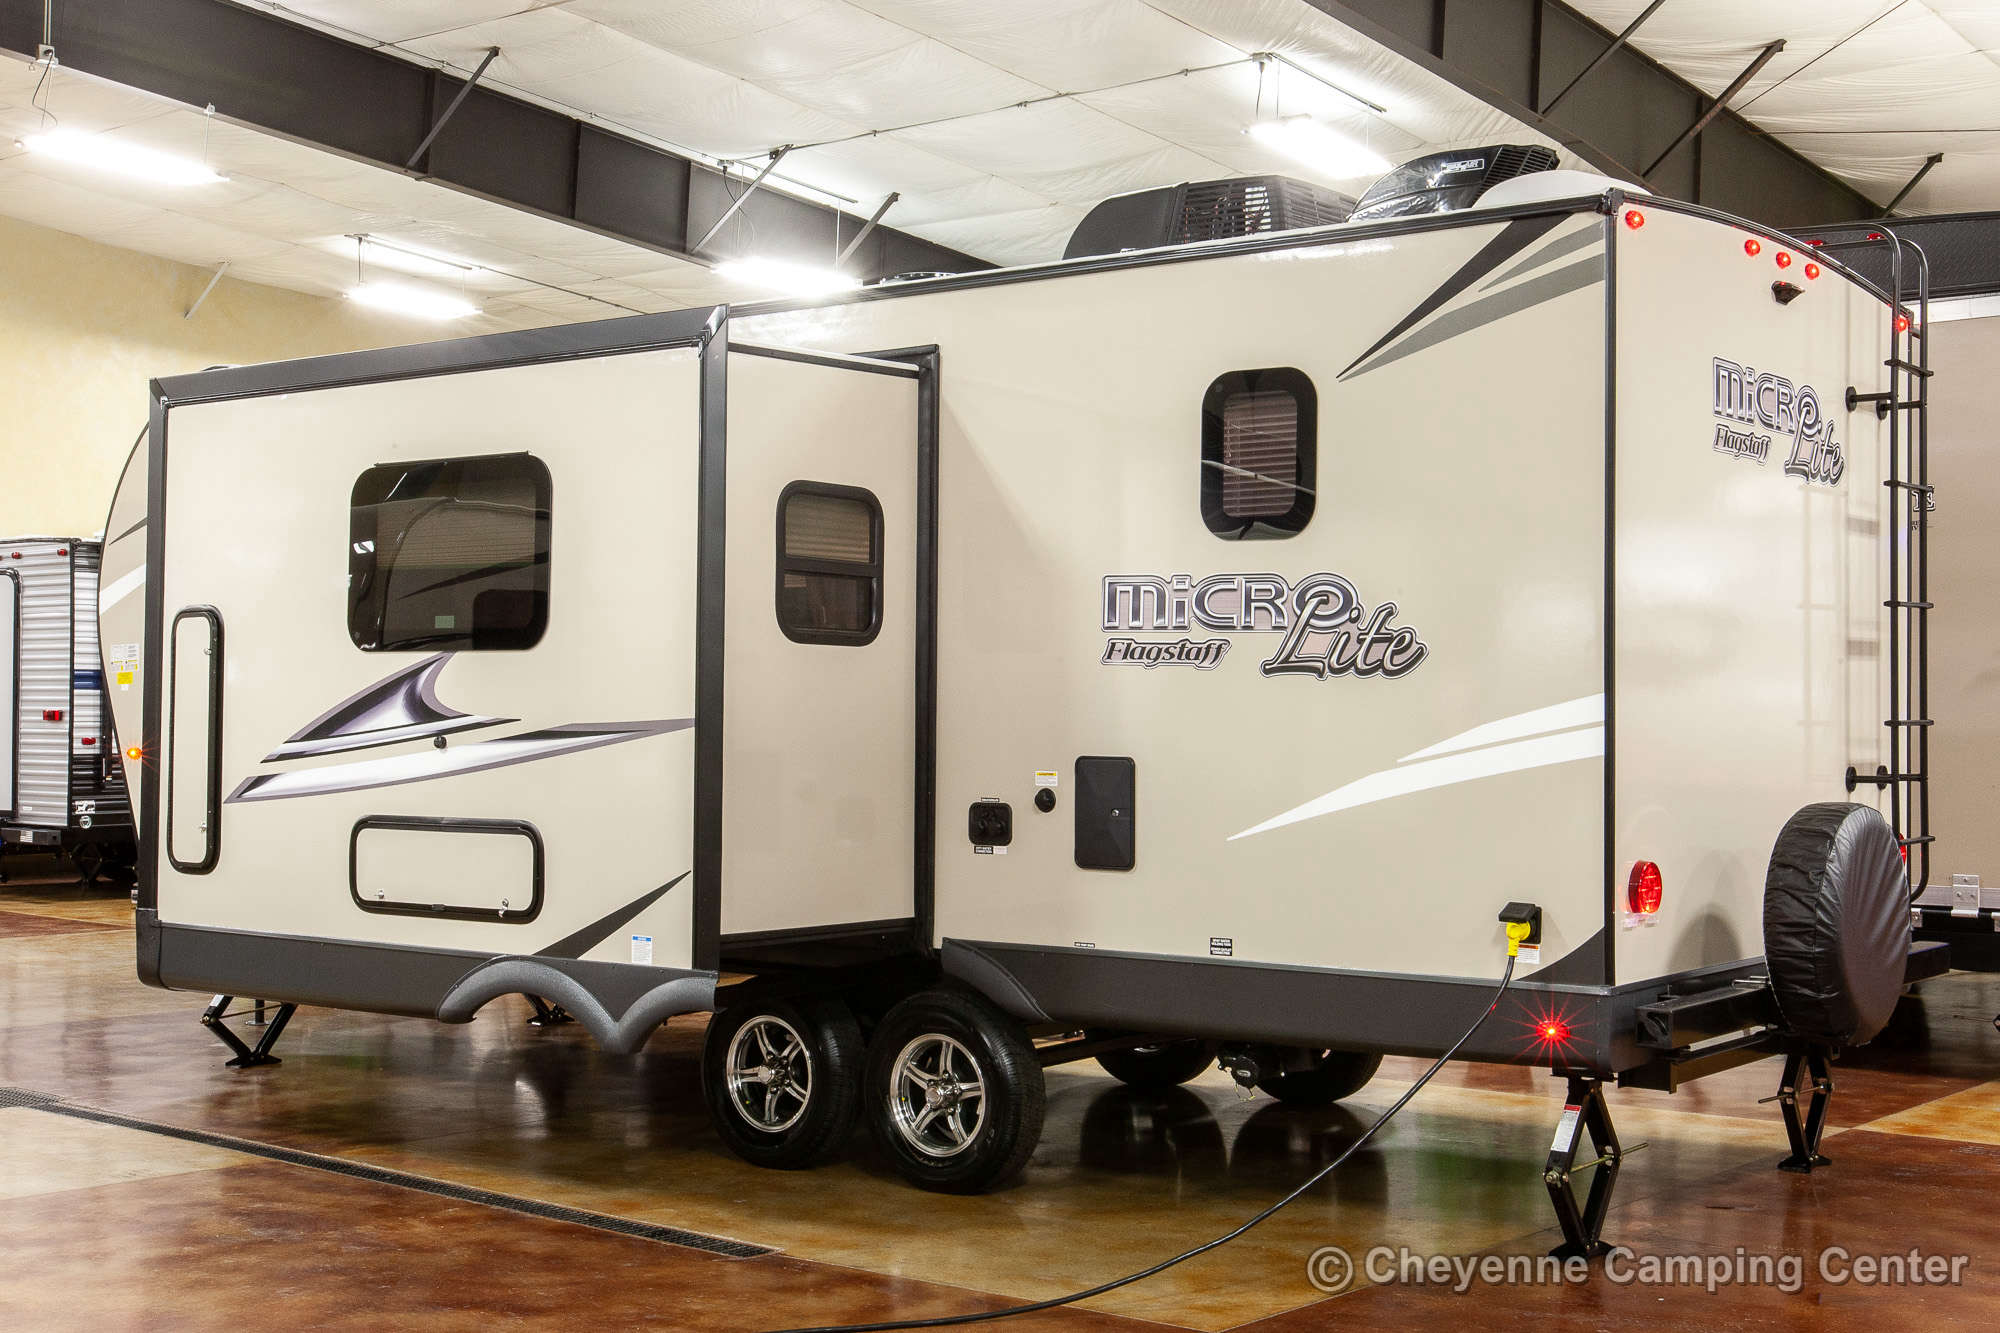 2021 Forest River Flagstaff Micro Lite 25BRDS Bunkhouse Travel Trailer Exterior Image